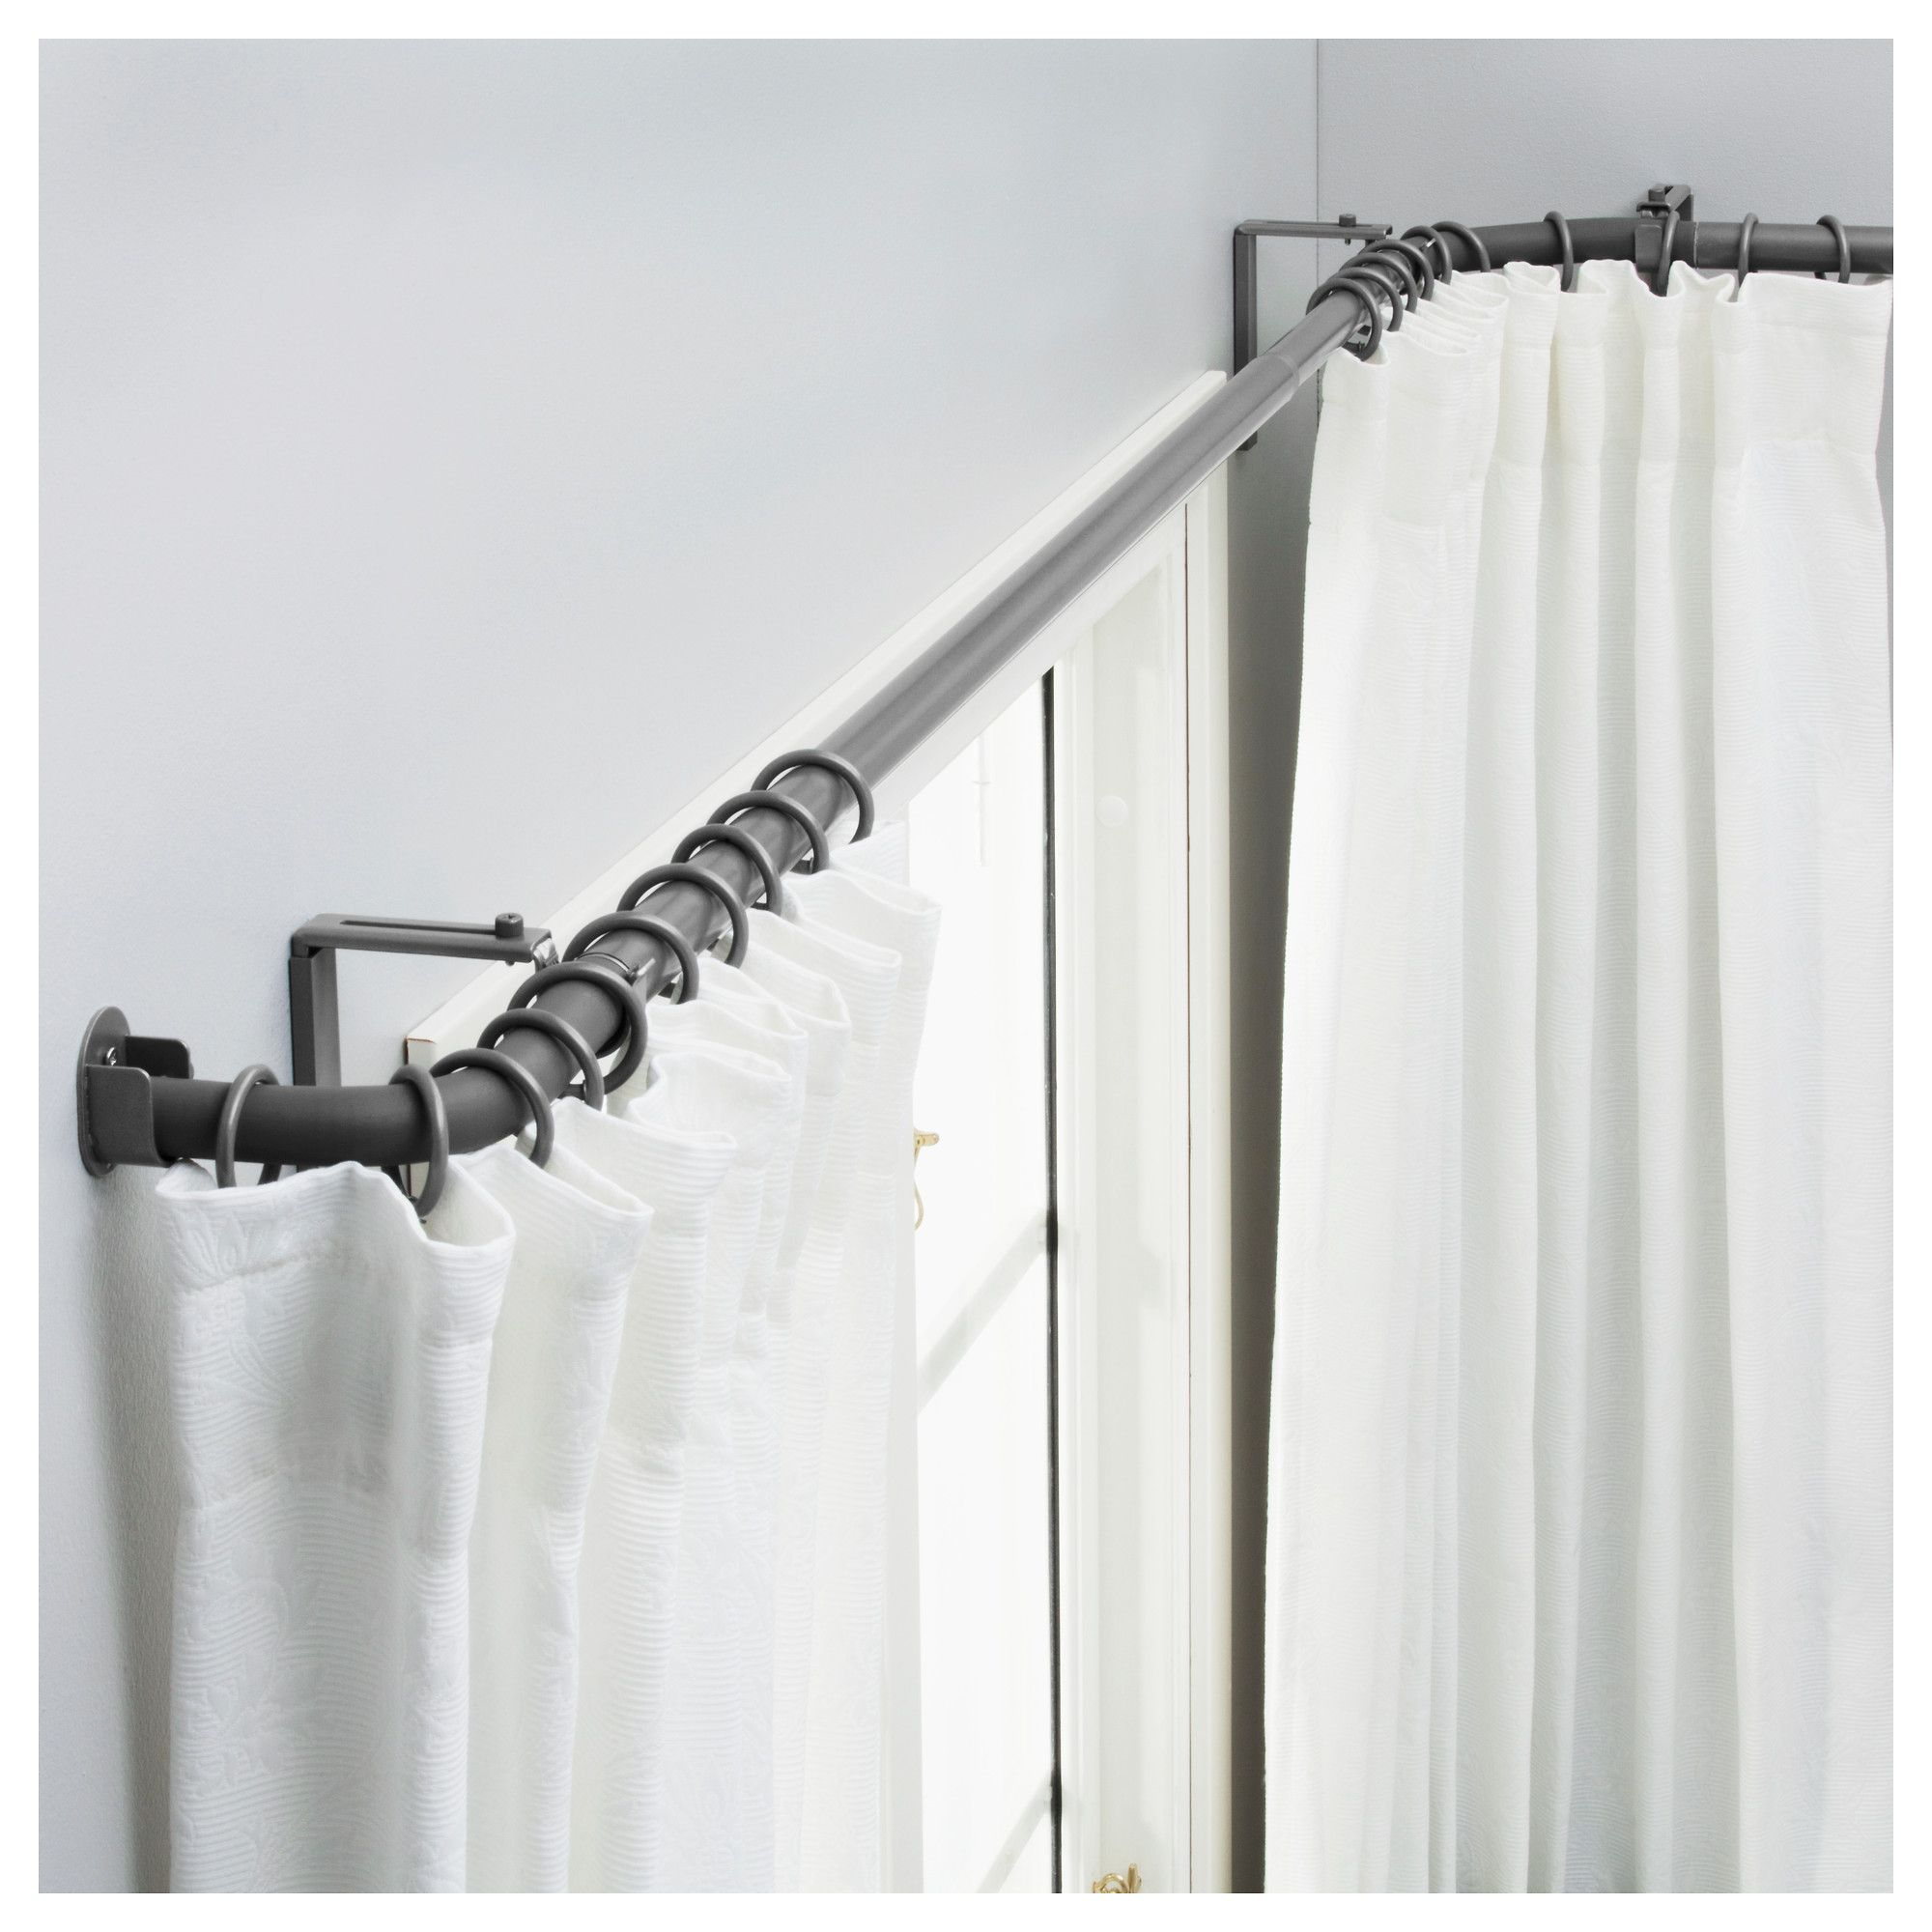 hugad curtain rod set for bay window ikea for the home pinterest k che. Black Bedroom Furniture Sets. Home Design Ideas